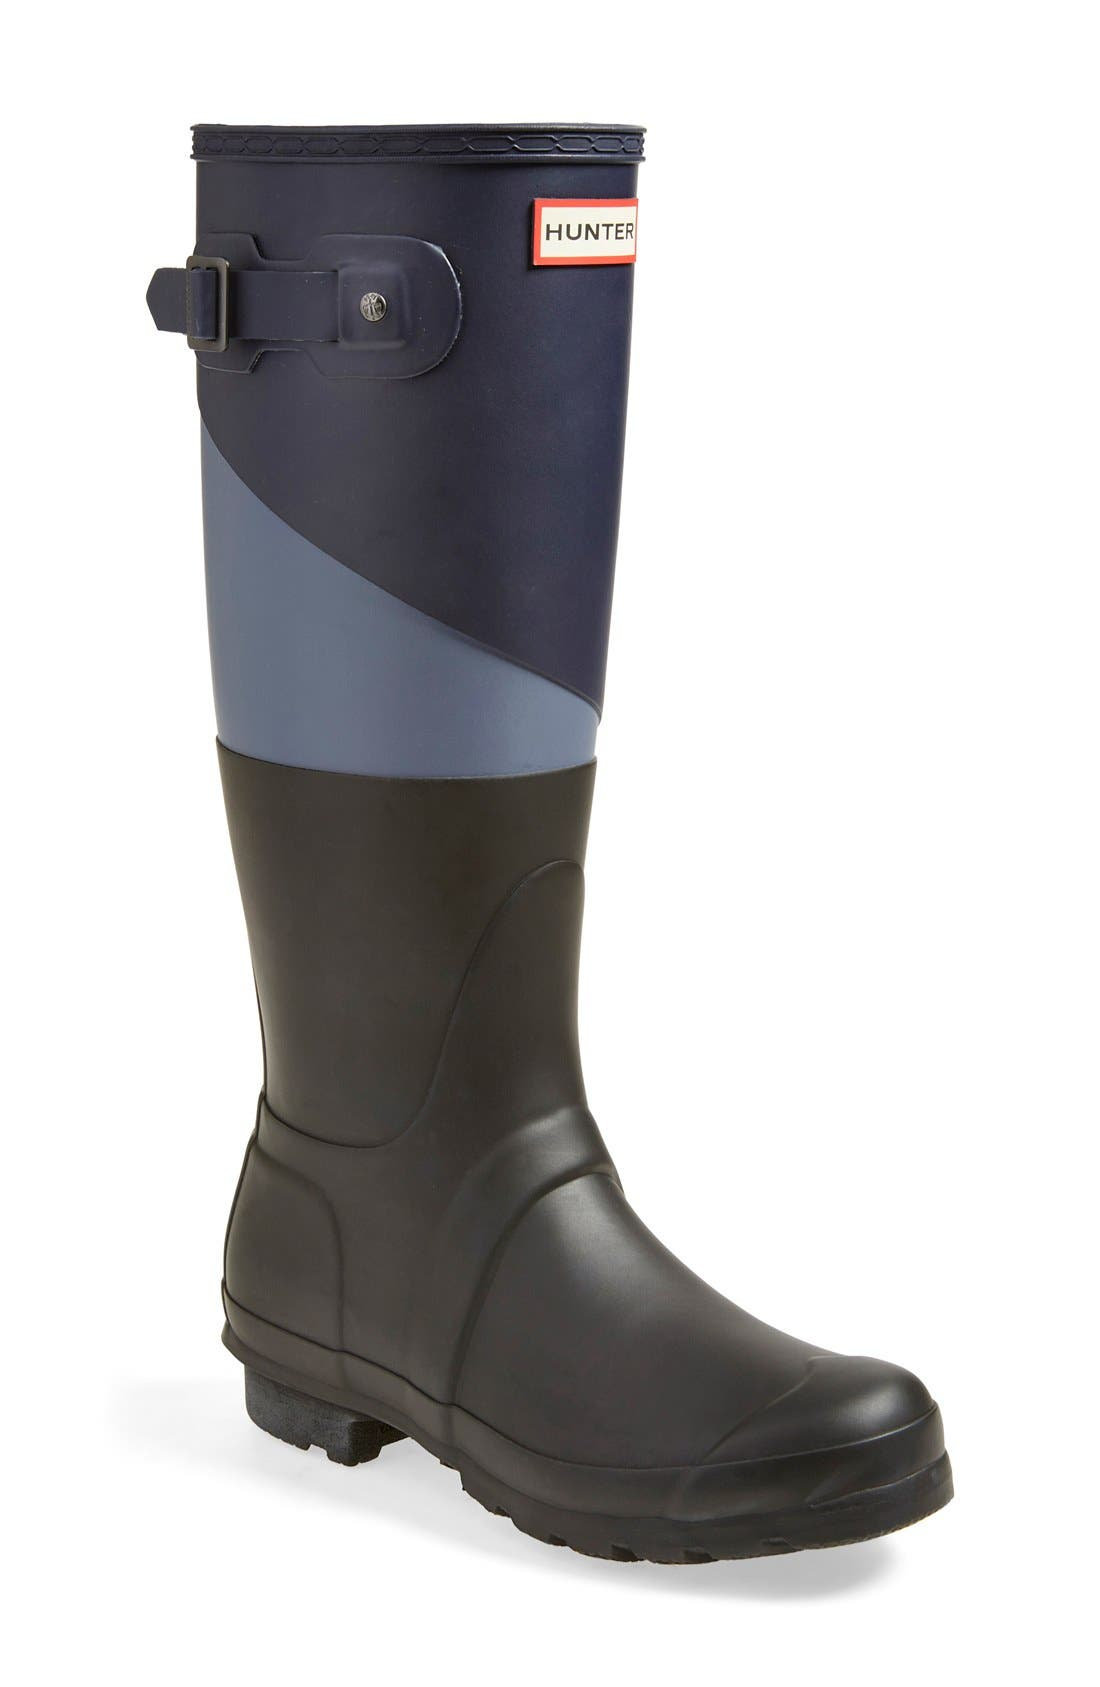 Main Image - Hunter 'Original - Asymmetric Colorblock' Waterproof Rain Boot (Women)